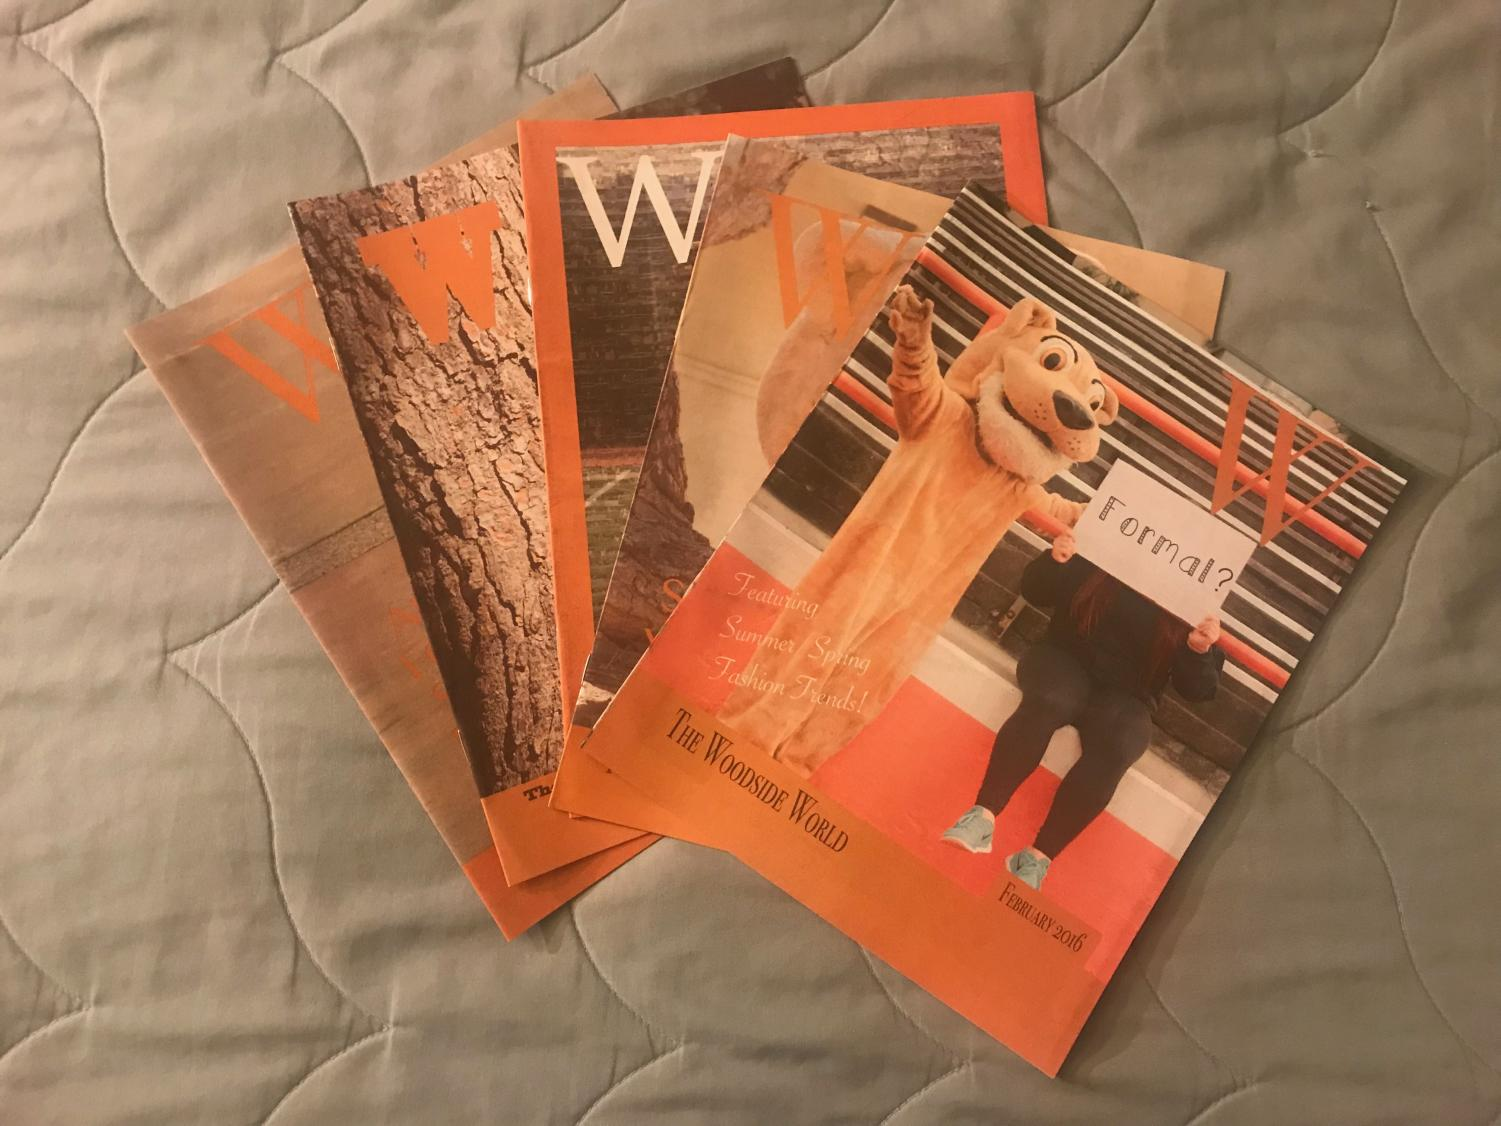 Copies of printed editions of the Woodside World